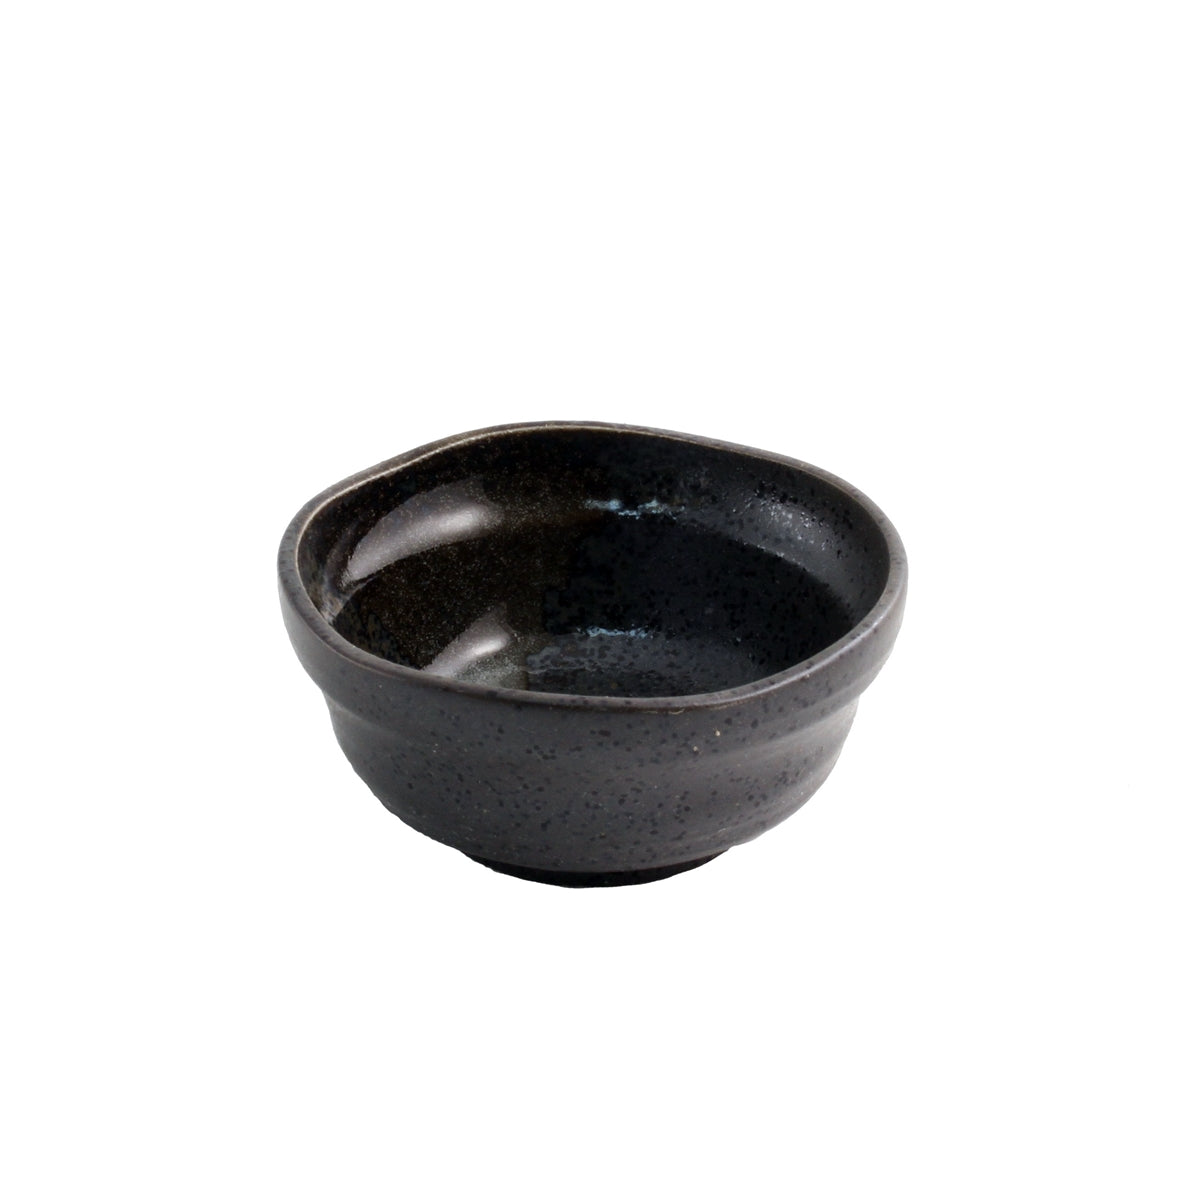 "Grainy Black Bowl 4.5 fl oz / 3.7'"" dia"